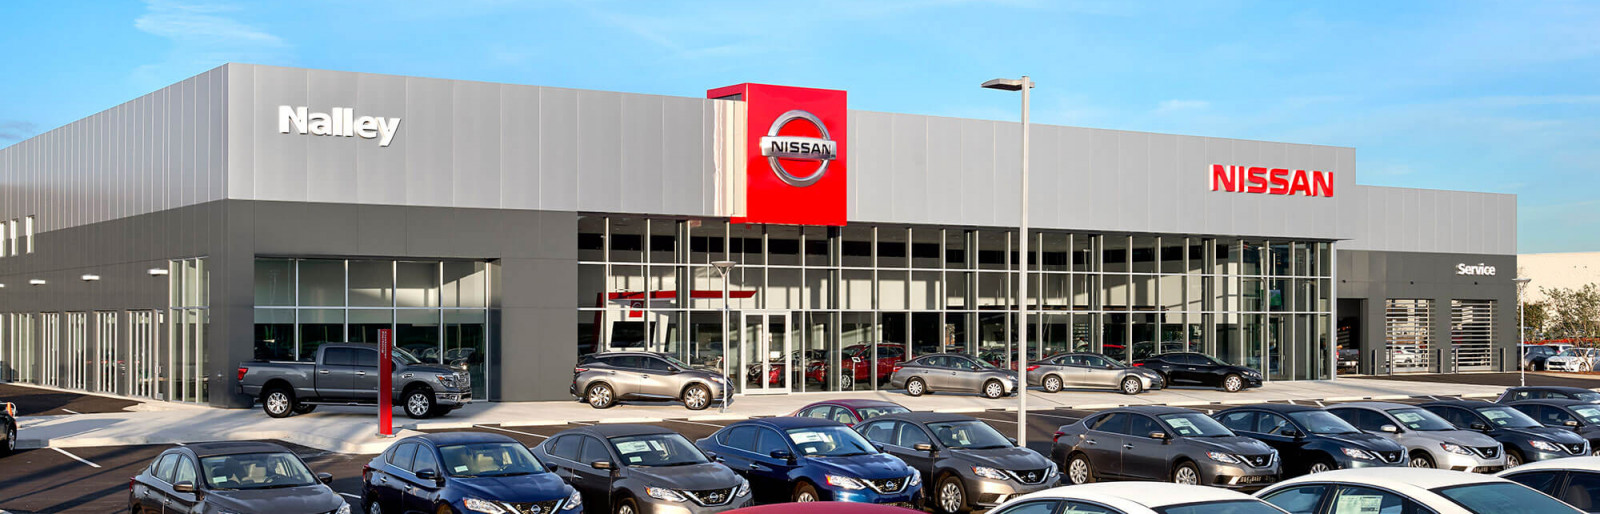 Creating a vibrant new look for Nissan's North American dealerships